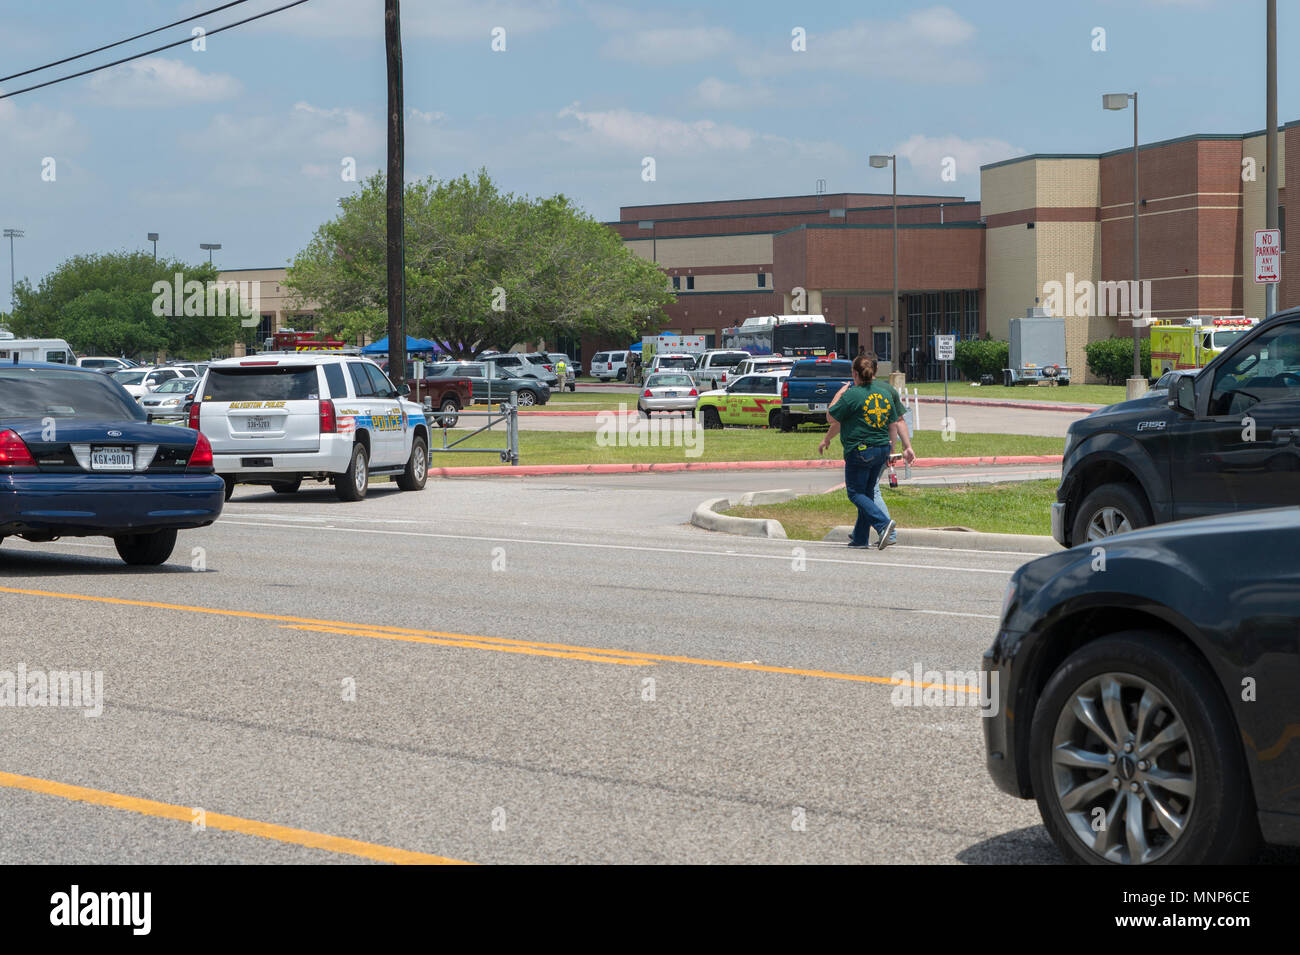 City of Santa Fe, Texas - May 18, 2018: Multiple Local, State and Federal, Enforcement Agencies Processing Active Crime Scene Following A Shooting In Santa Fe High School Credit: michelmond/Alamy Live News - Stock Image